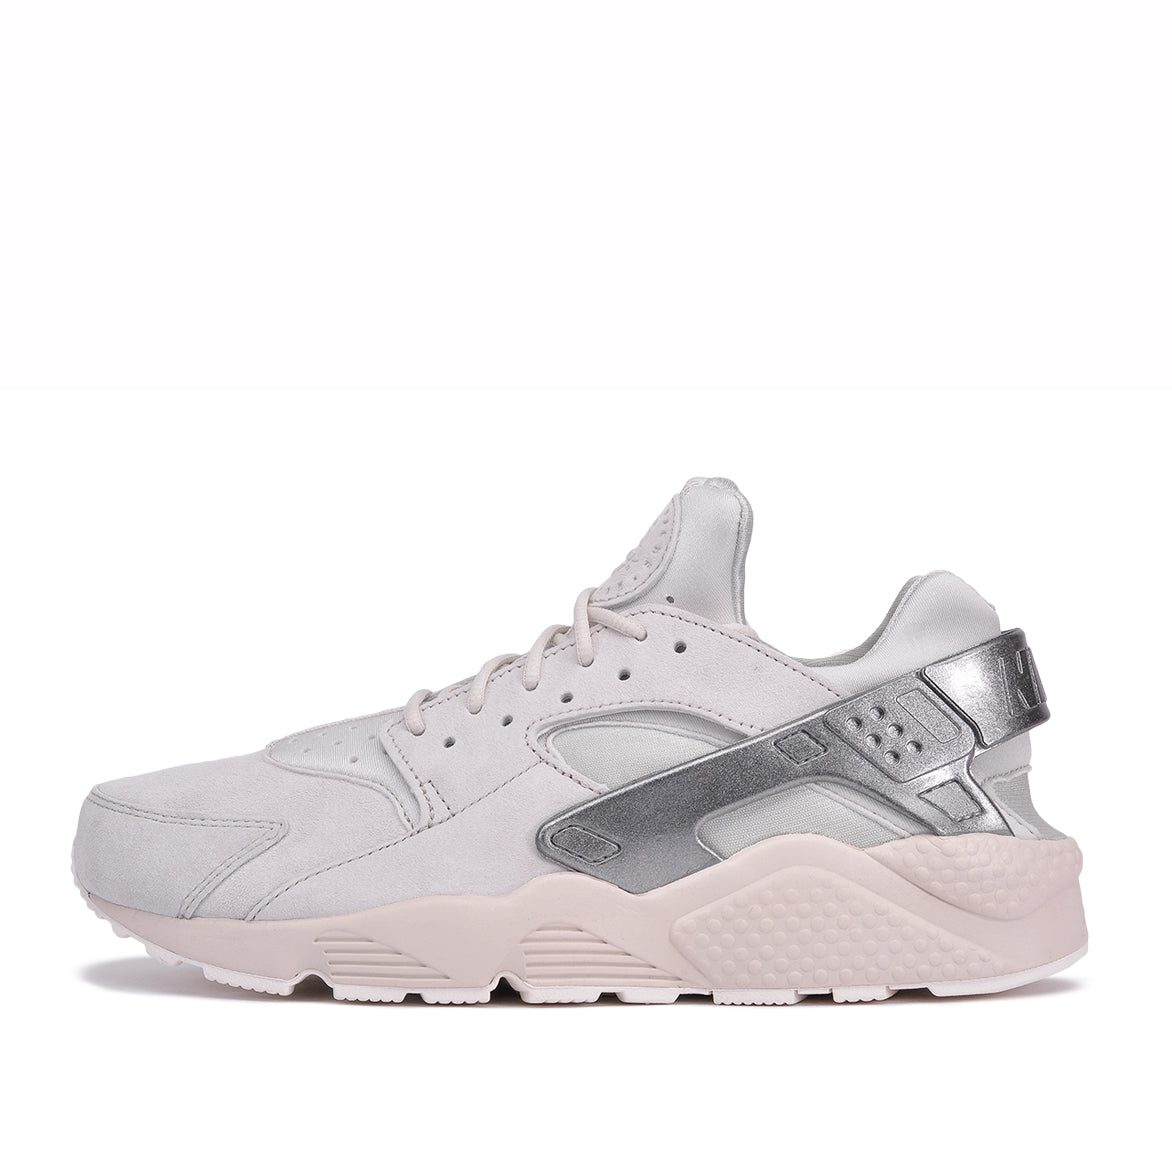 d37b1bad3c1a AIR HUARACHE RUN PRM - LIGHT BONE   METALLIC COOL GREY